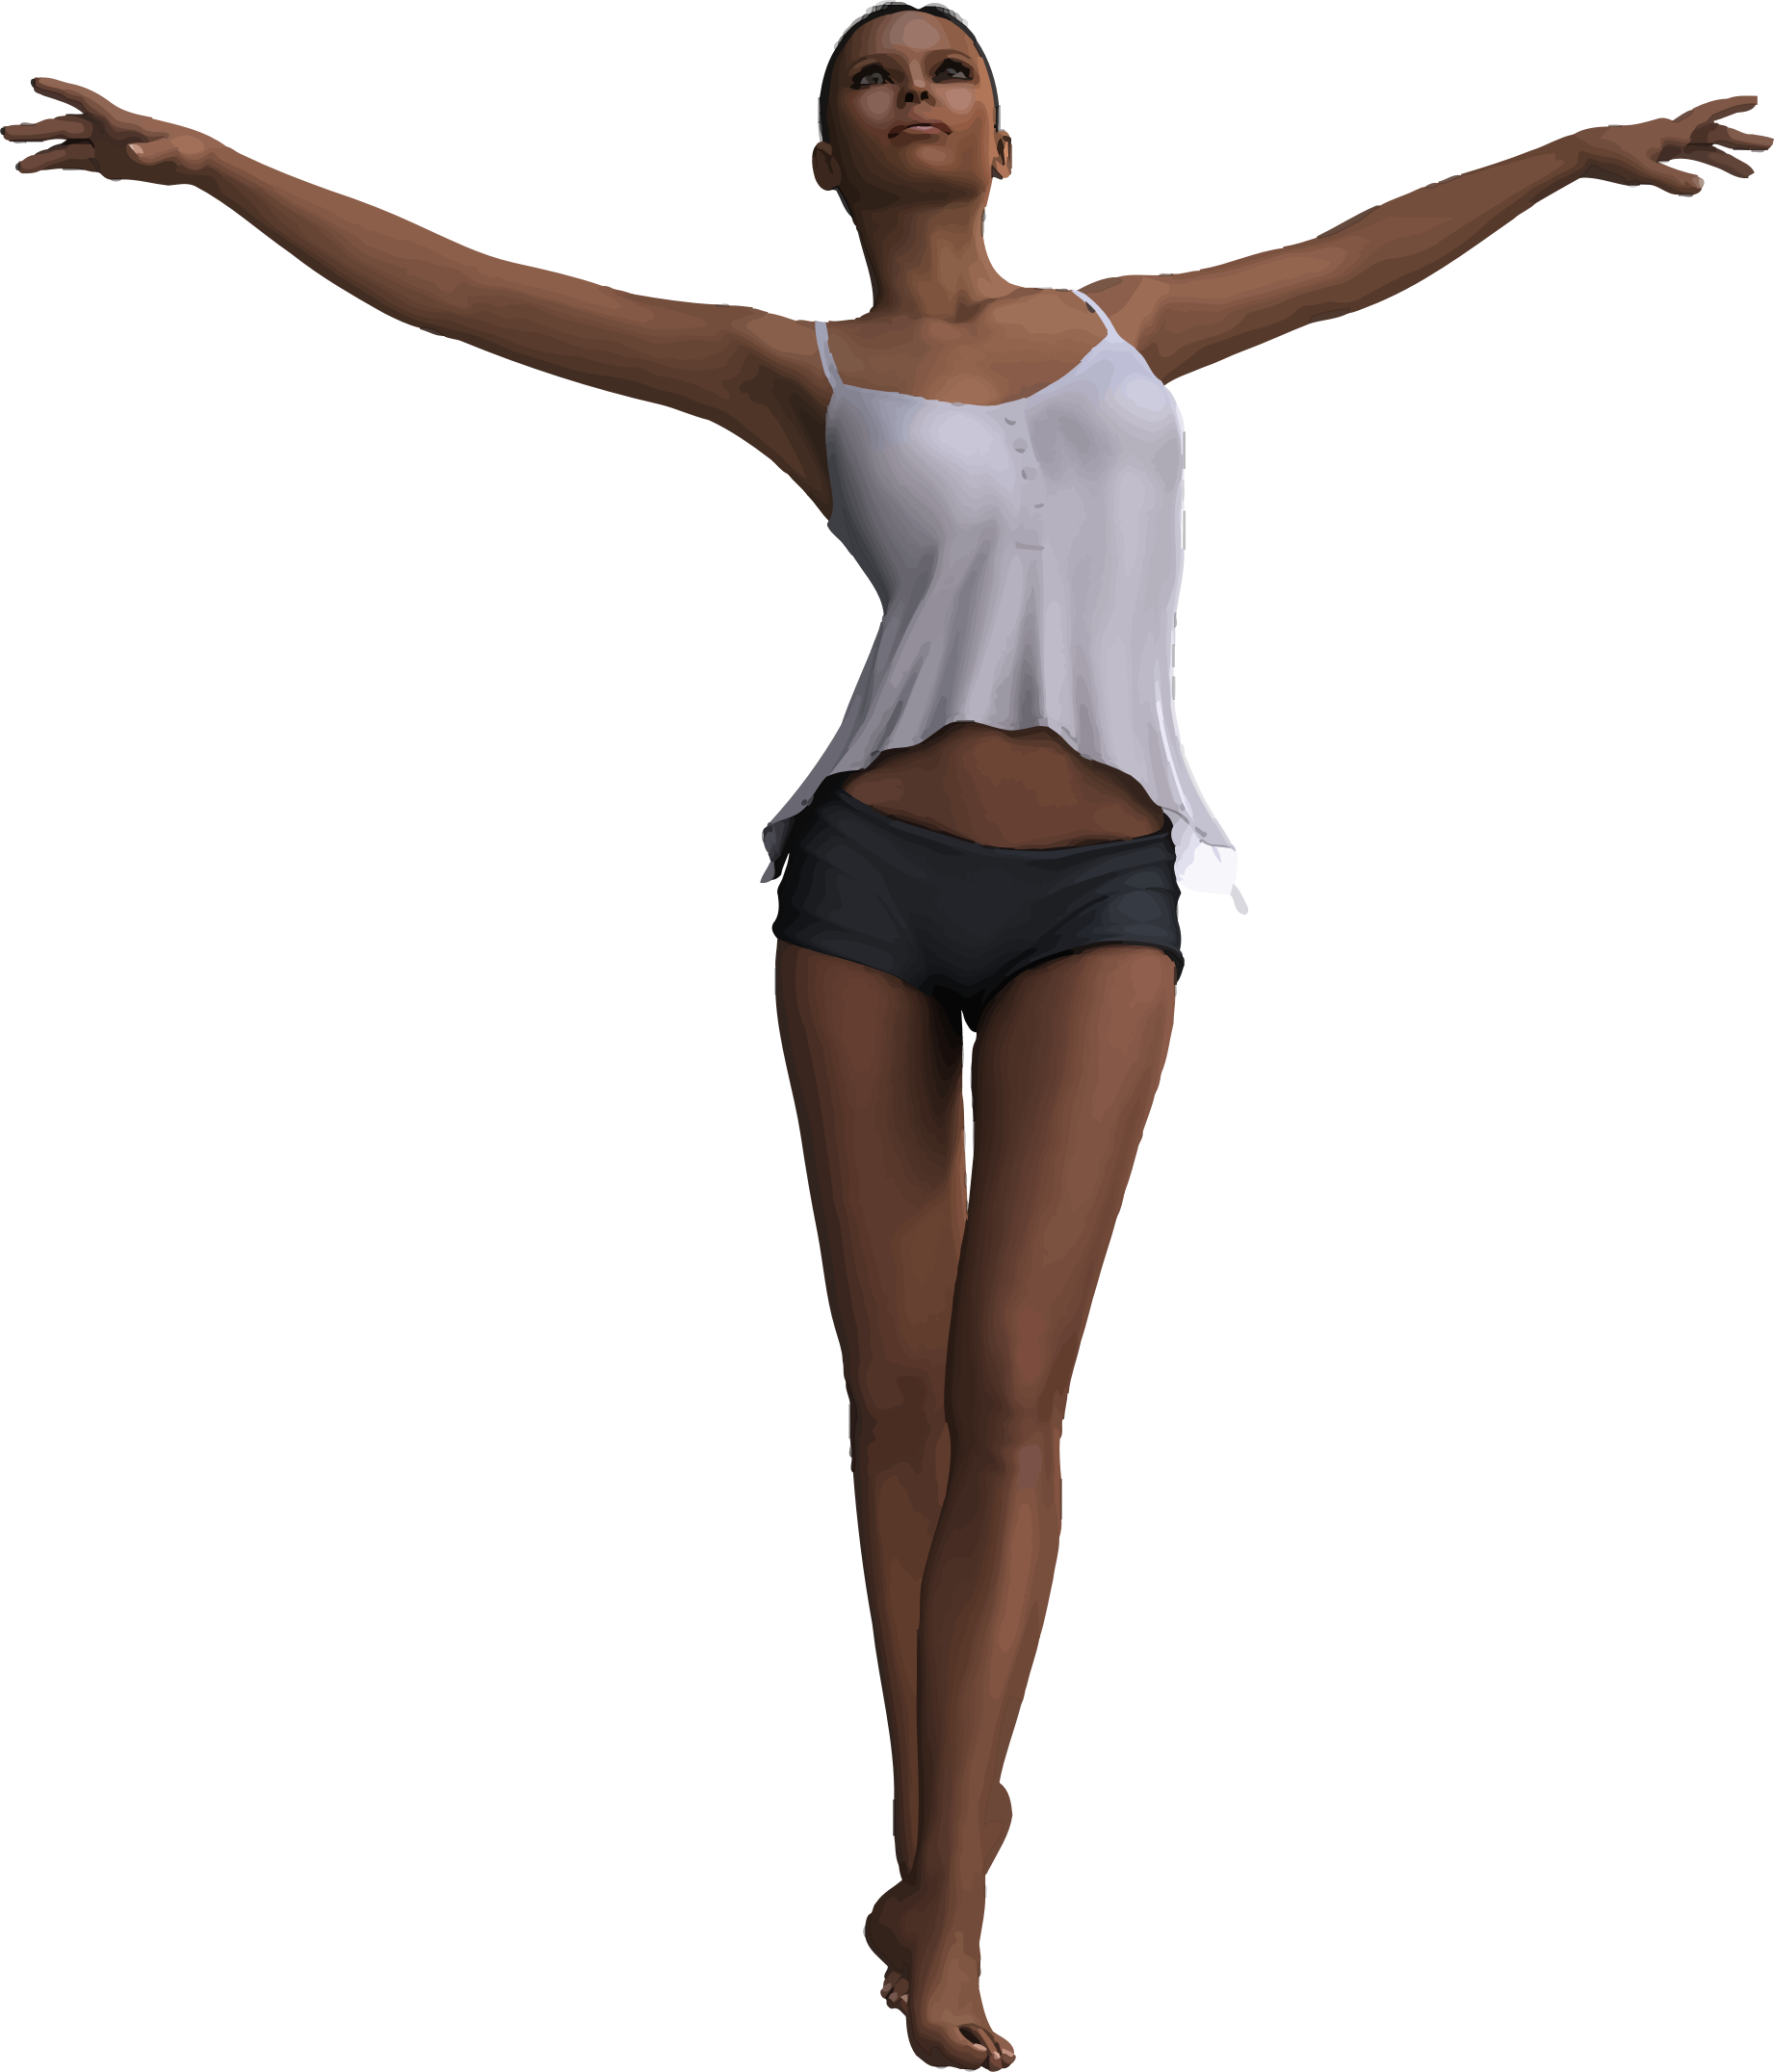 Woman With Outstretched Arms by GDJ